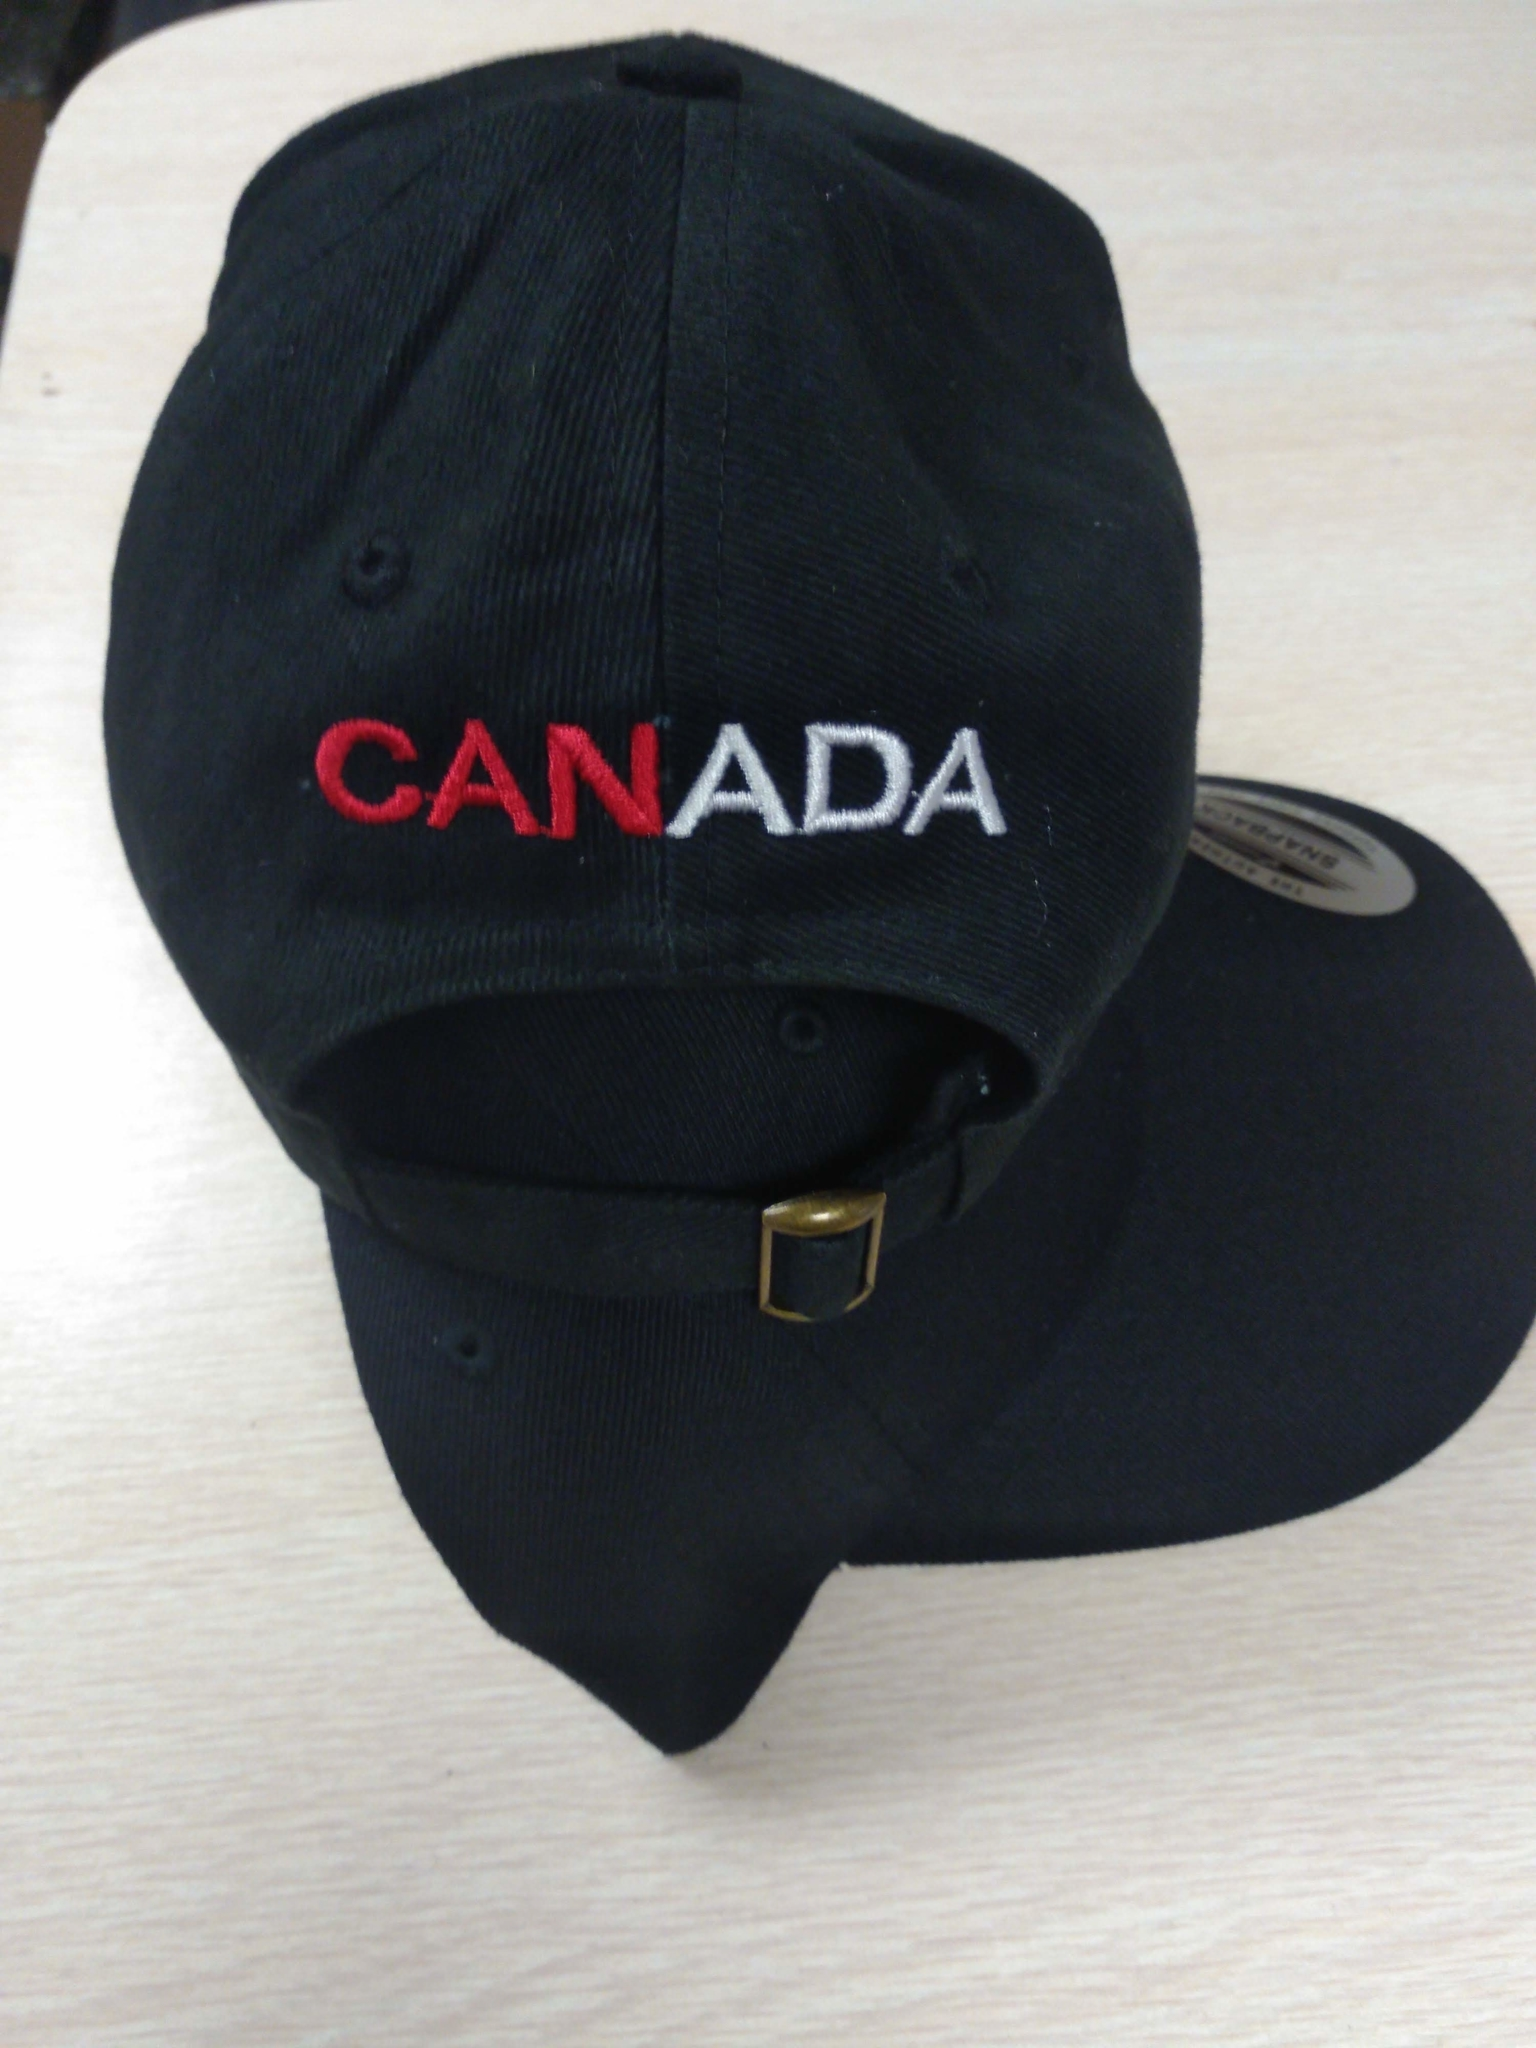 Just My Lids in Scarborough: Multi-panel hat custom embroider.y Please contact us for a quote. We offer volume discounts on large orders.